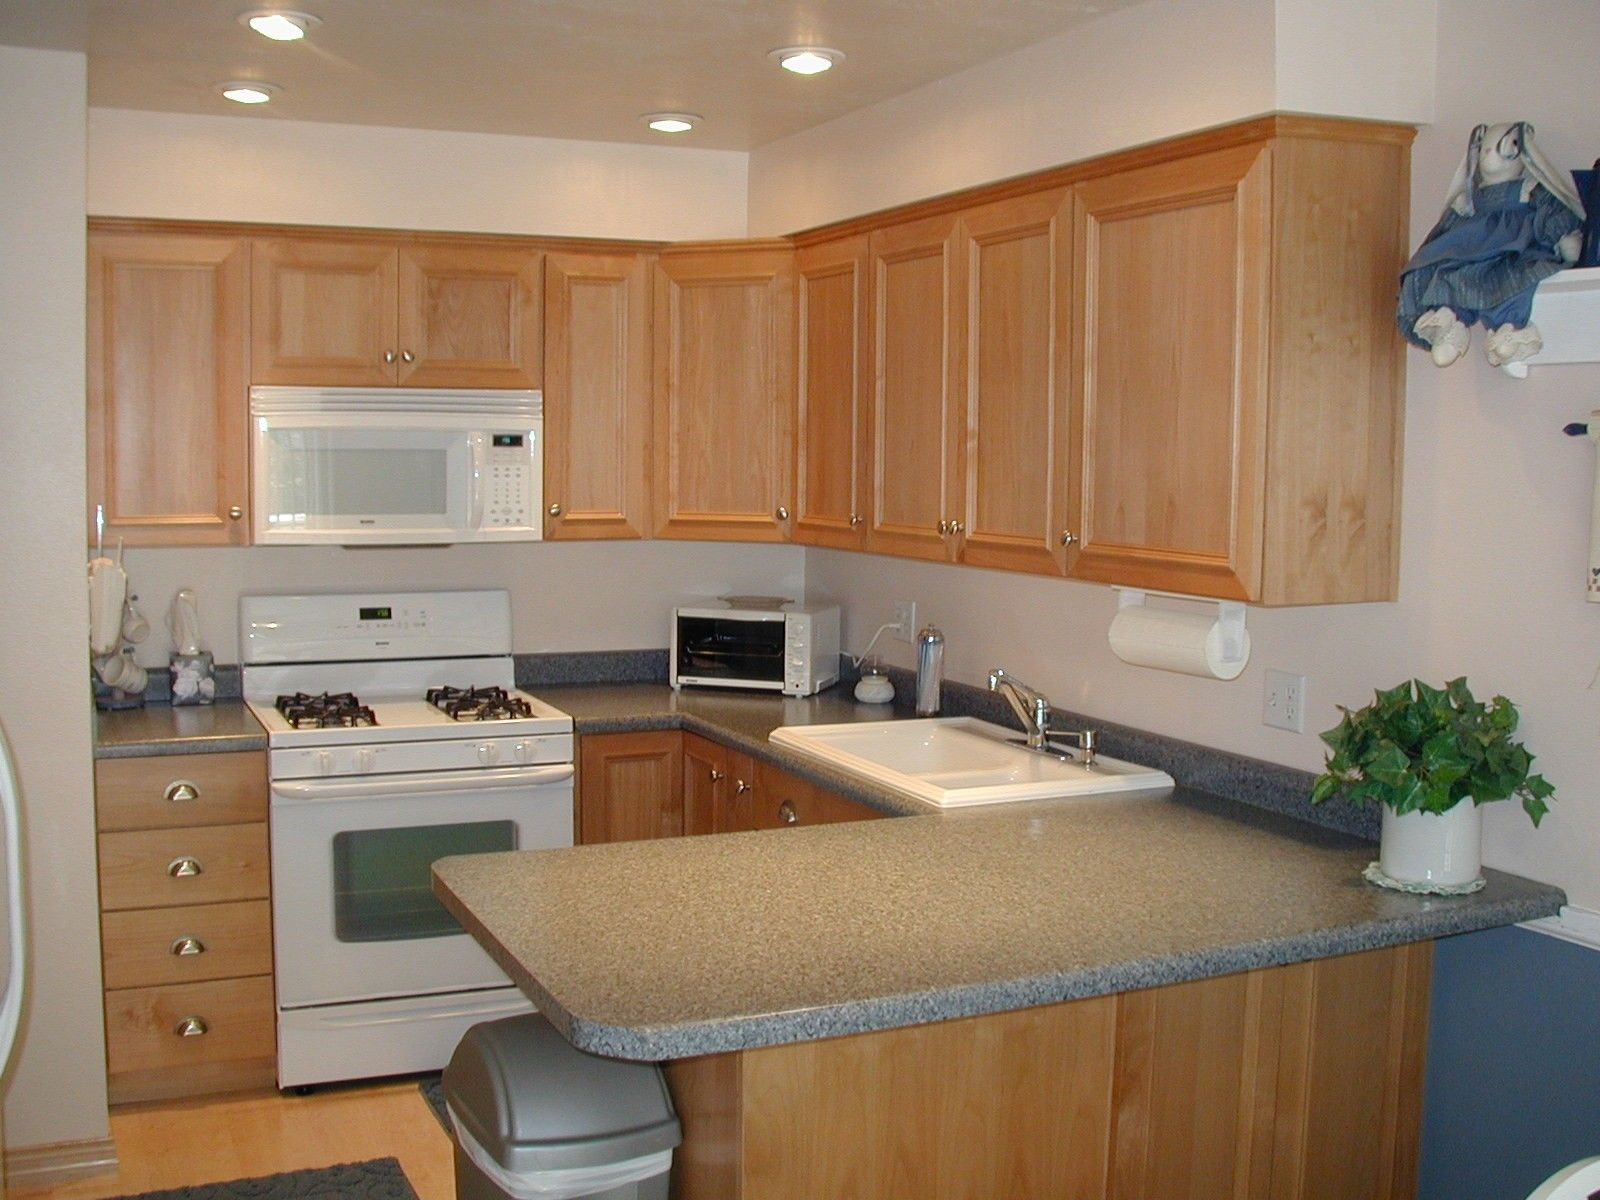 Lovely Kitchen Counter Color W/ White Appliances